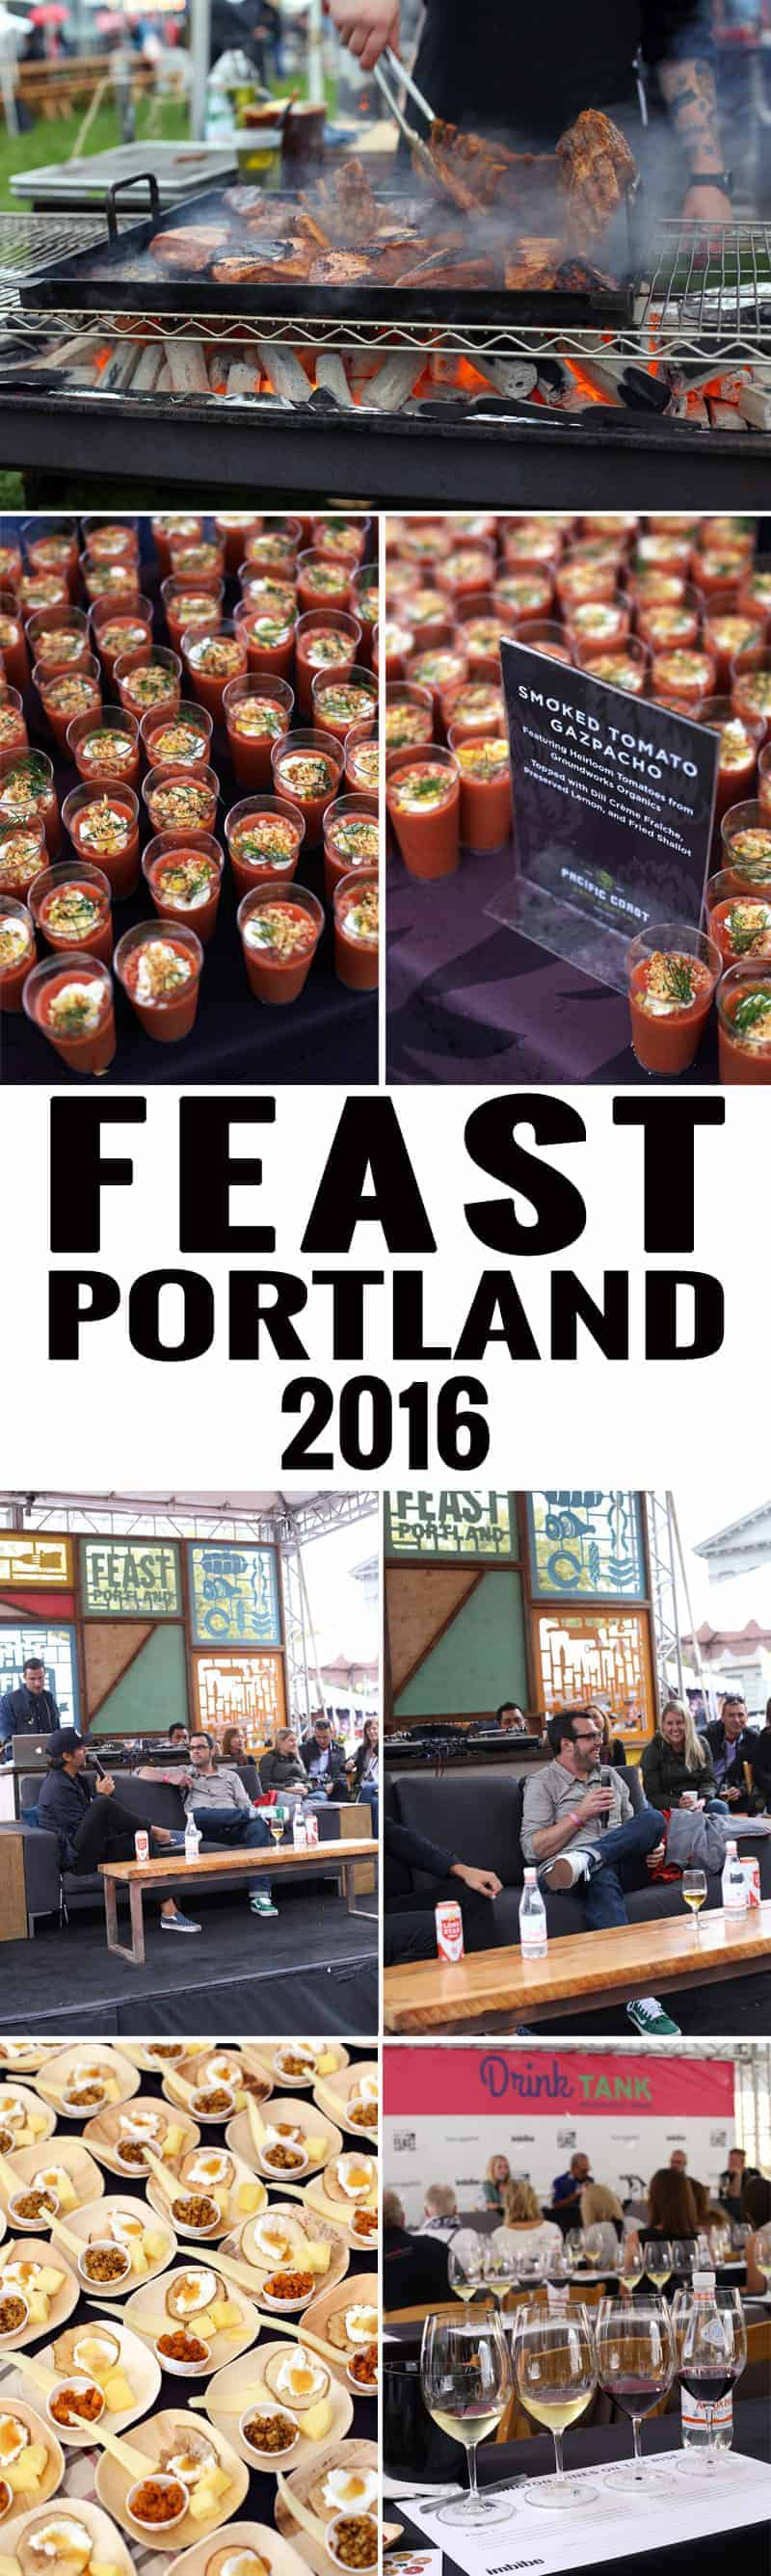 Feast Portland in Pictures